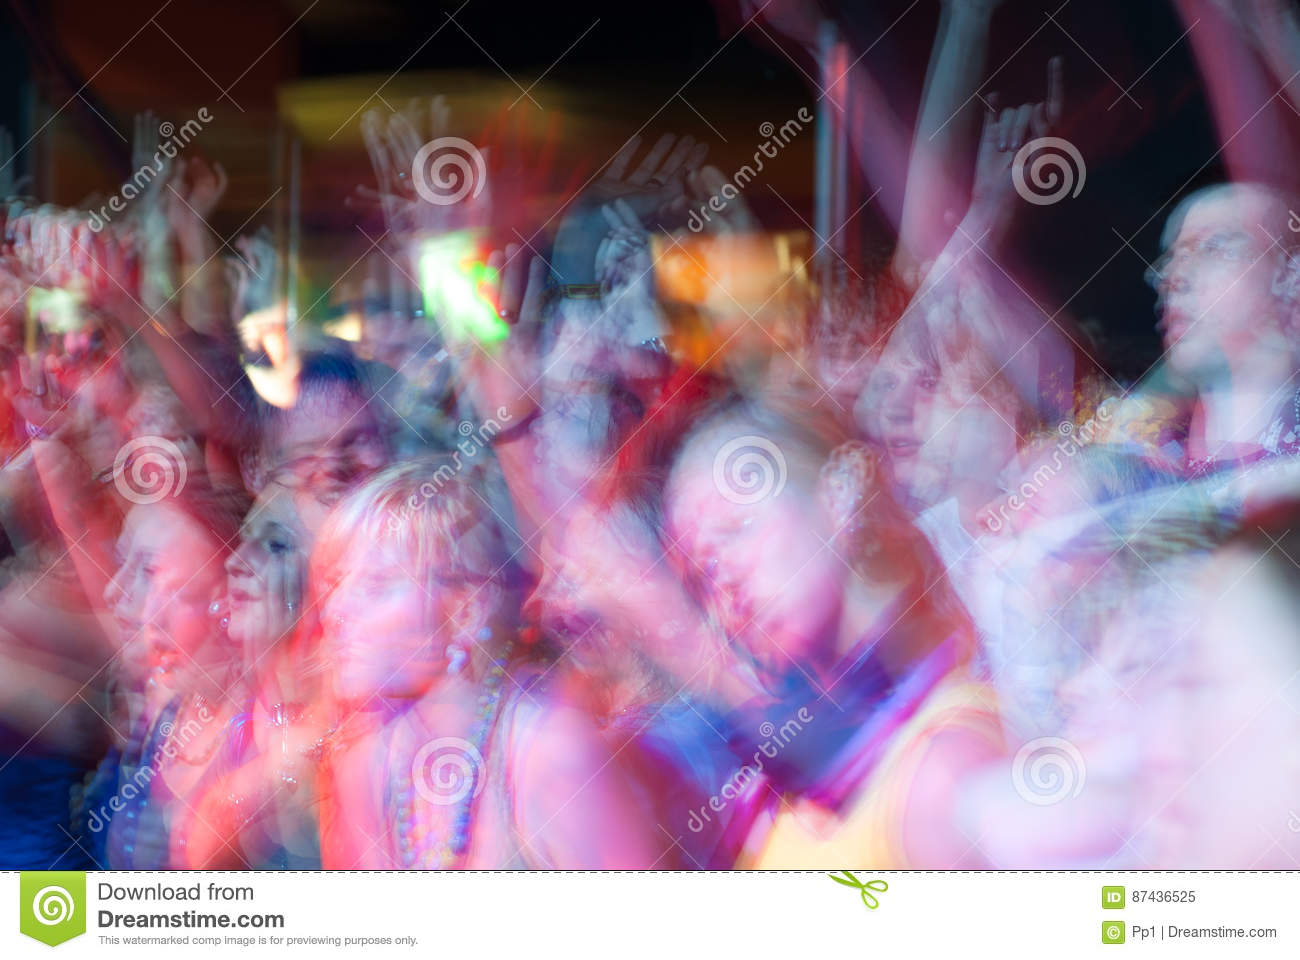 Young people crowd dancing and cheering during a rock band music concert performance at a festival